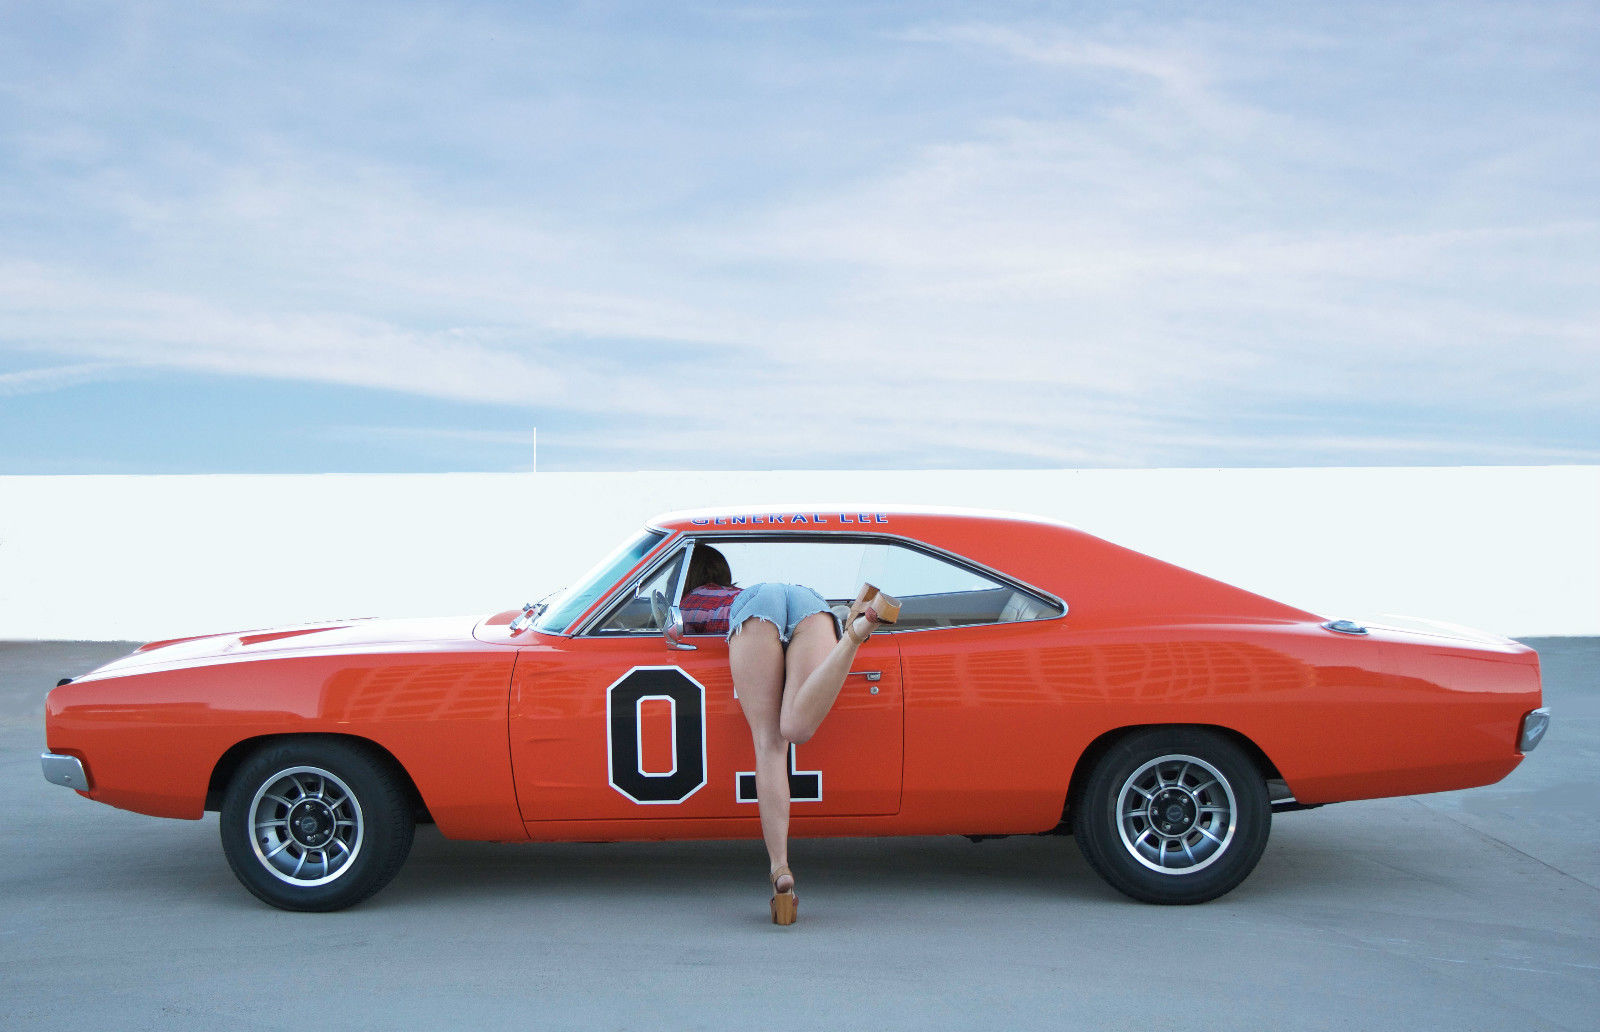 Old Classic El Camino Muscle Cars Wallpaper 1969 Dodge Charger Quot General Lee Quot Dukes Of Hazzard For Sale